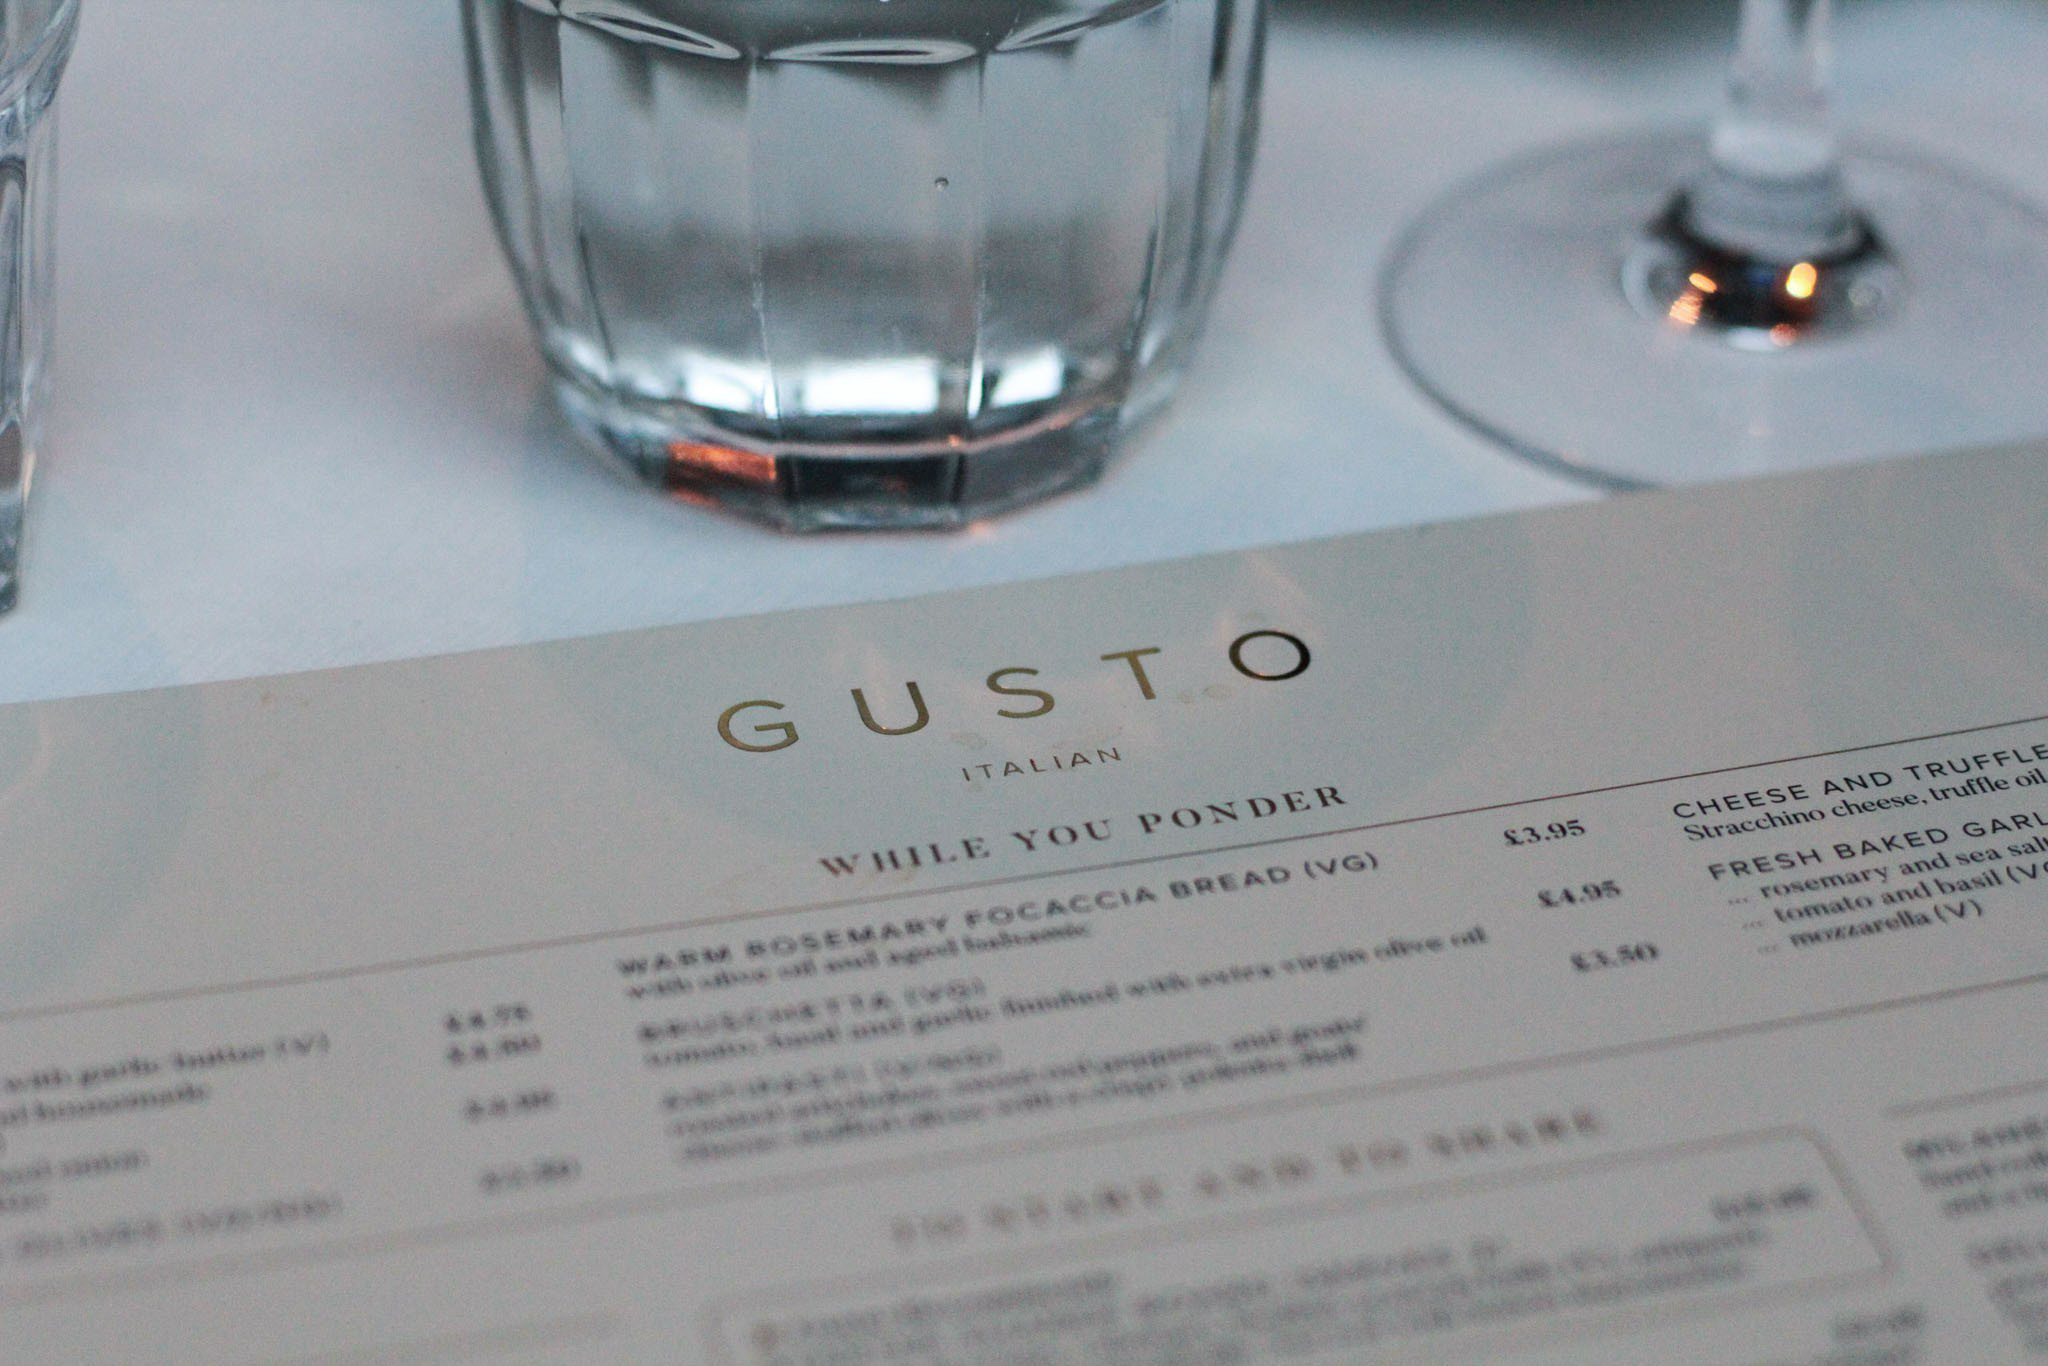 new menu at gusto - starters